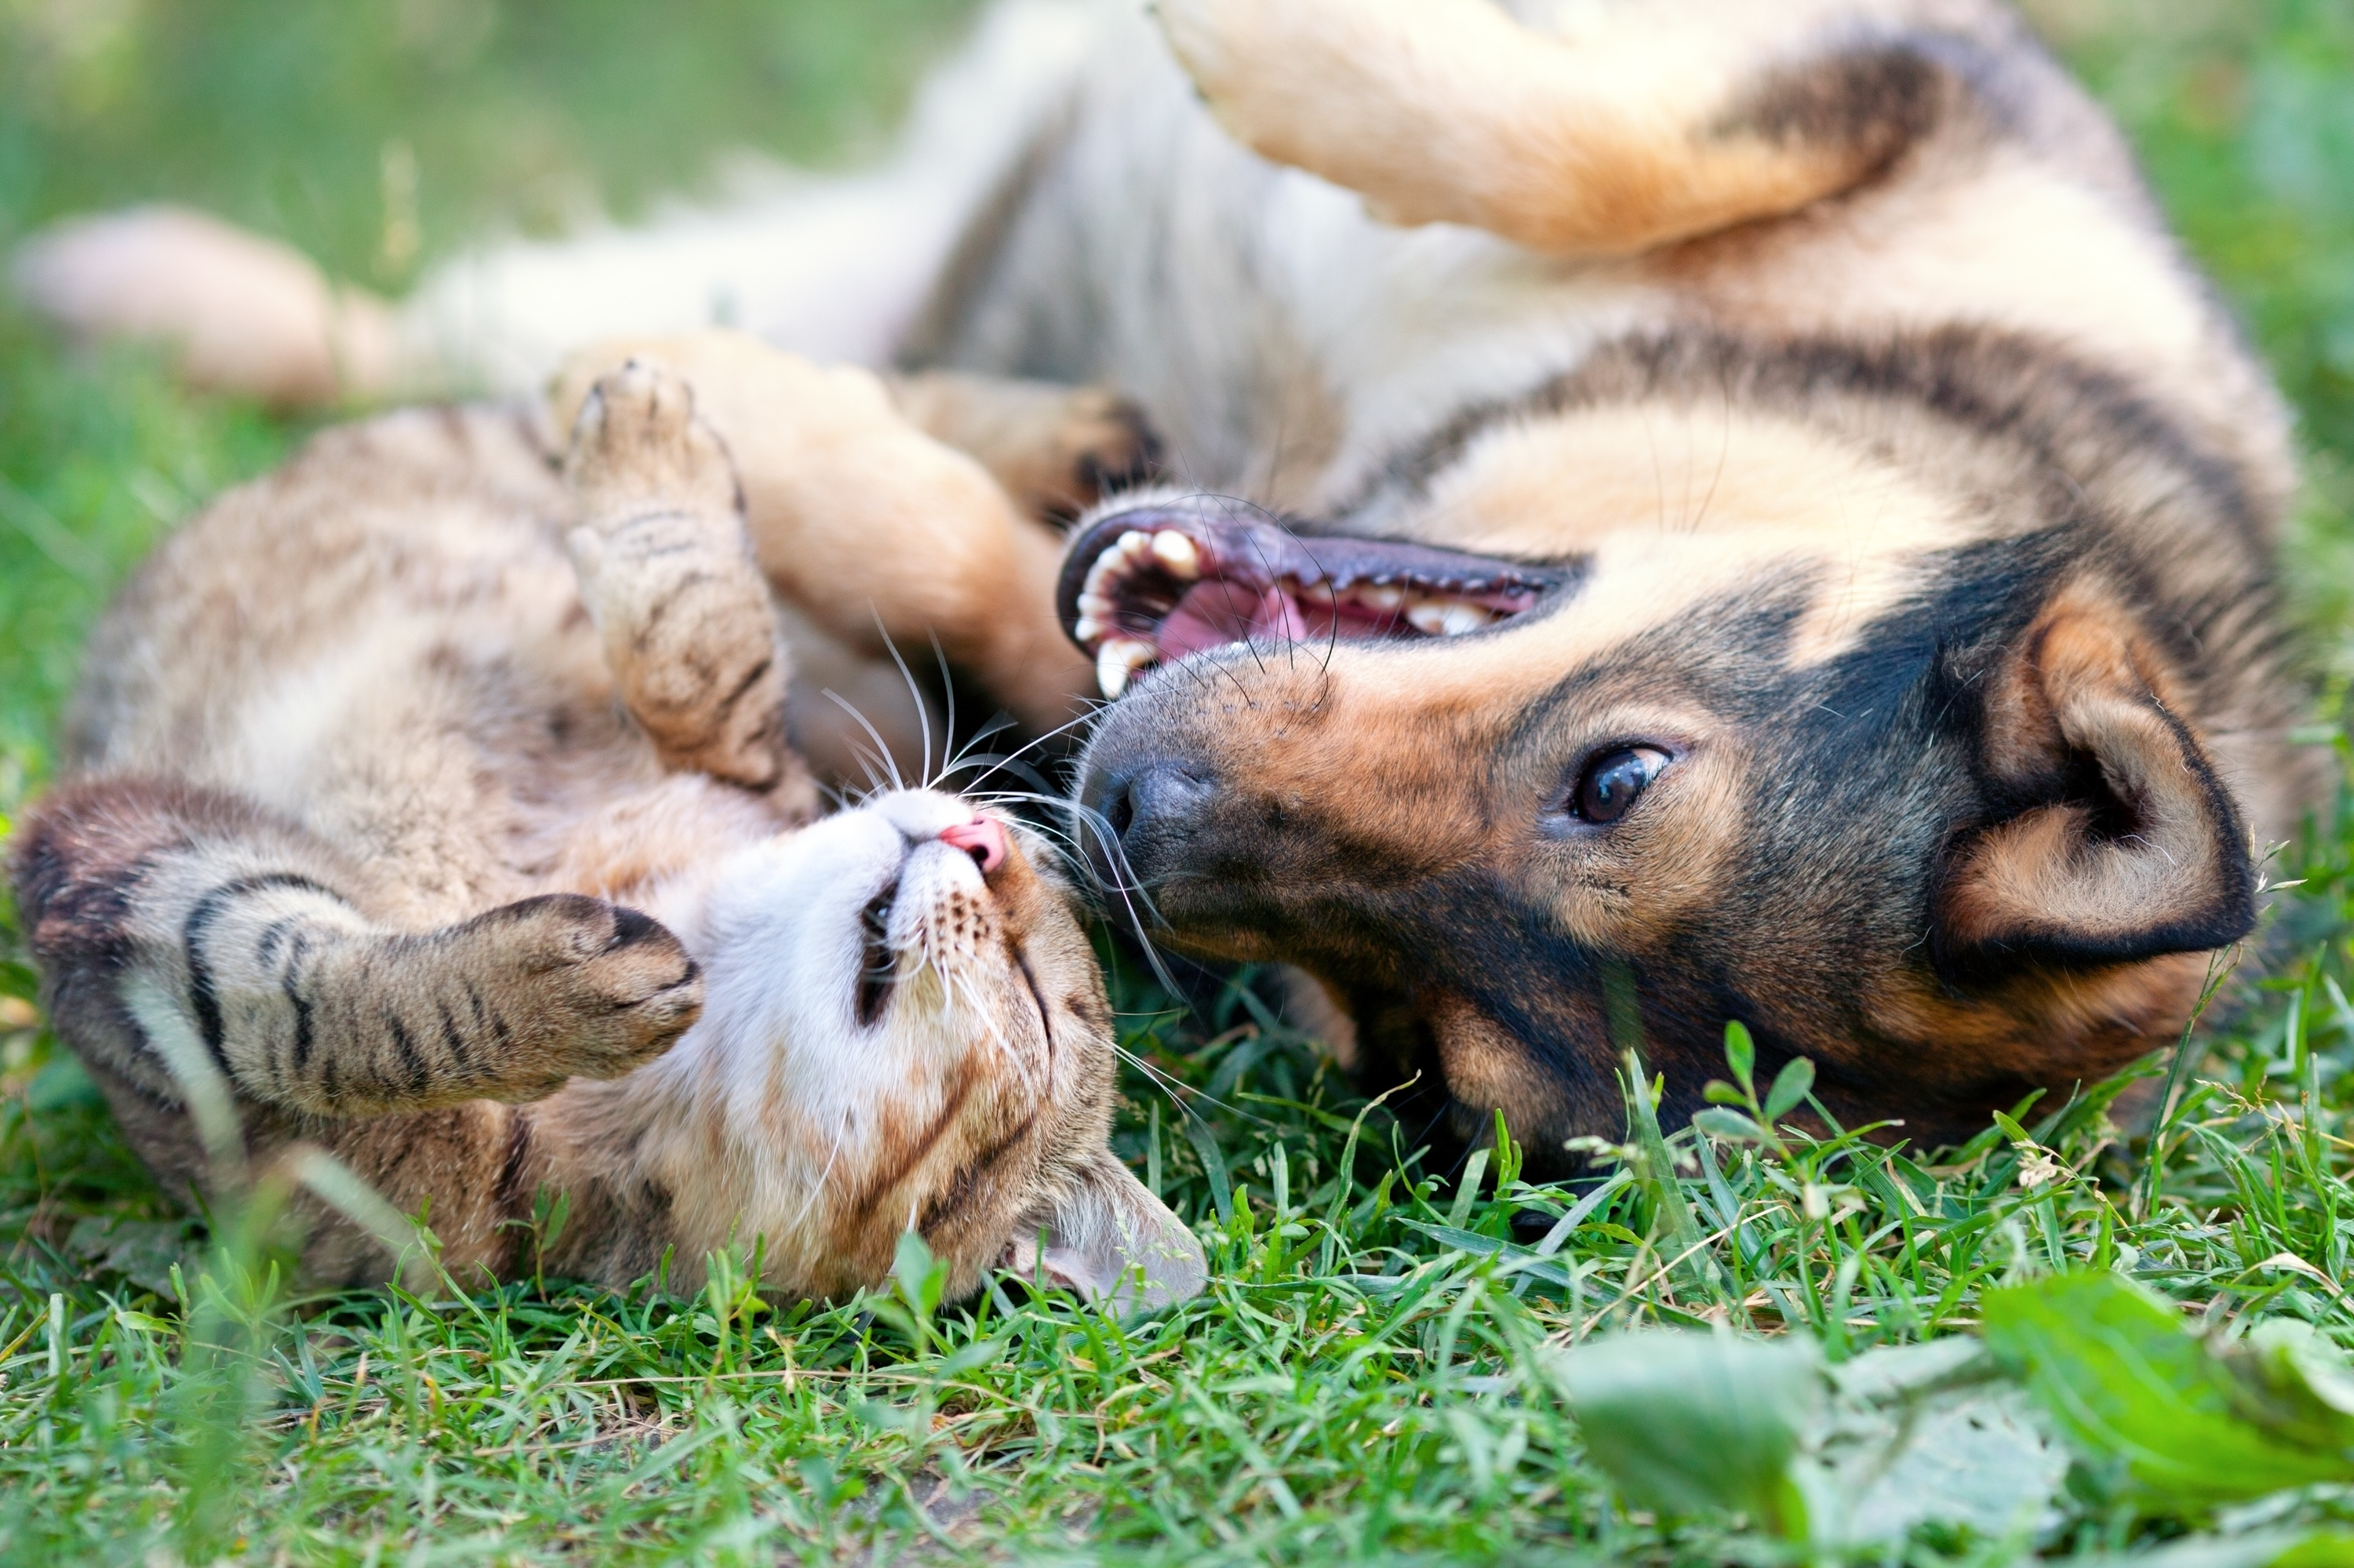 lawn-and-garden-tips-to-keep-pet-safe.jpg